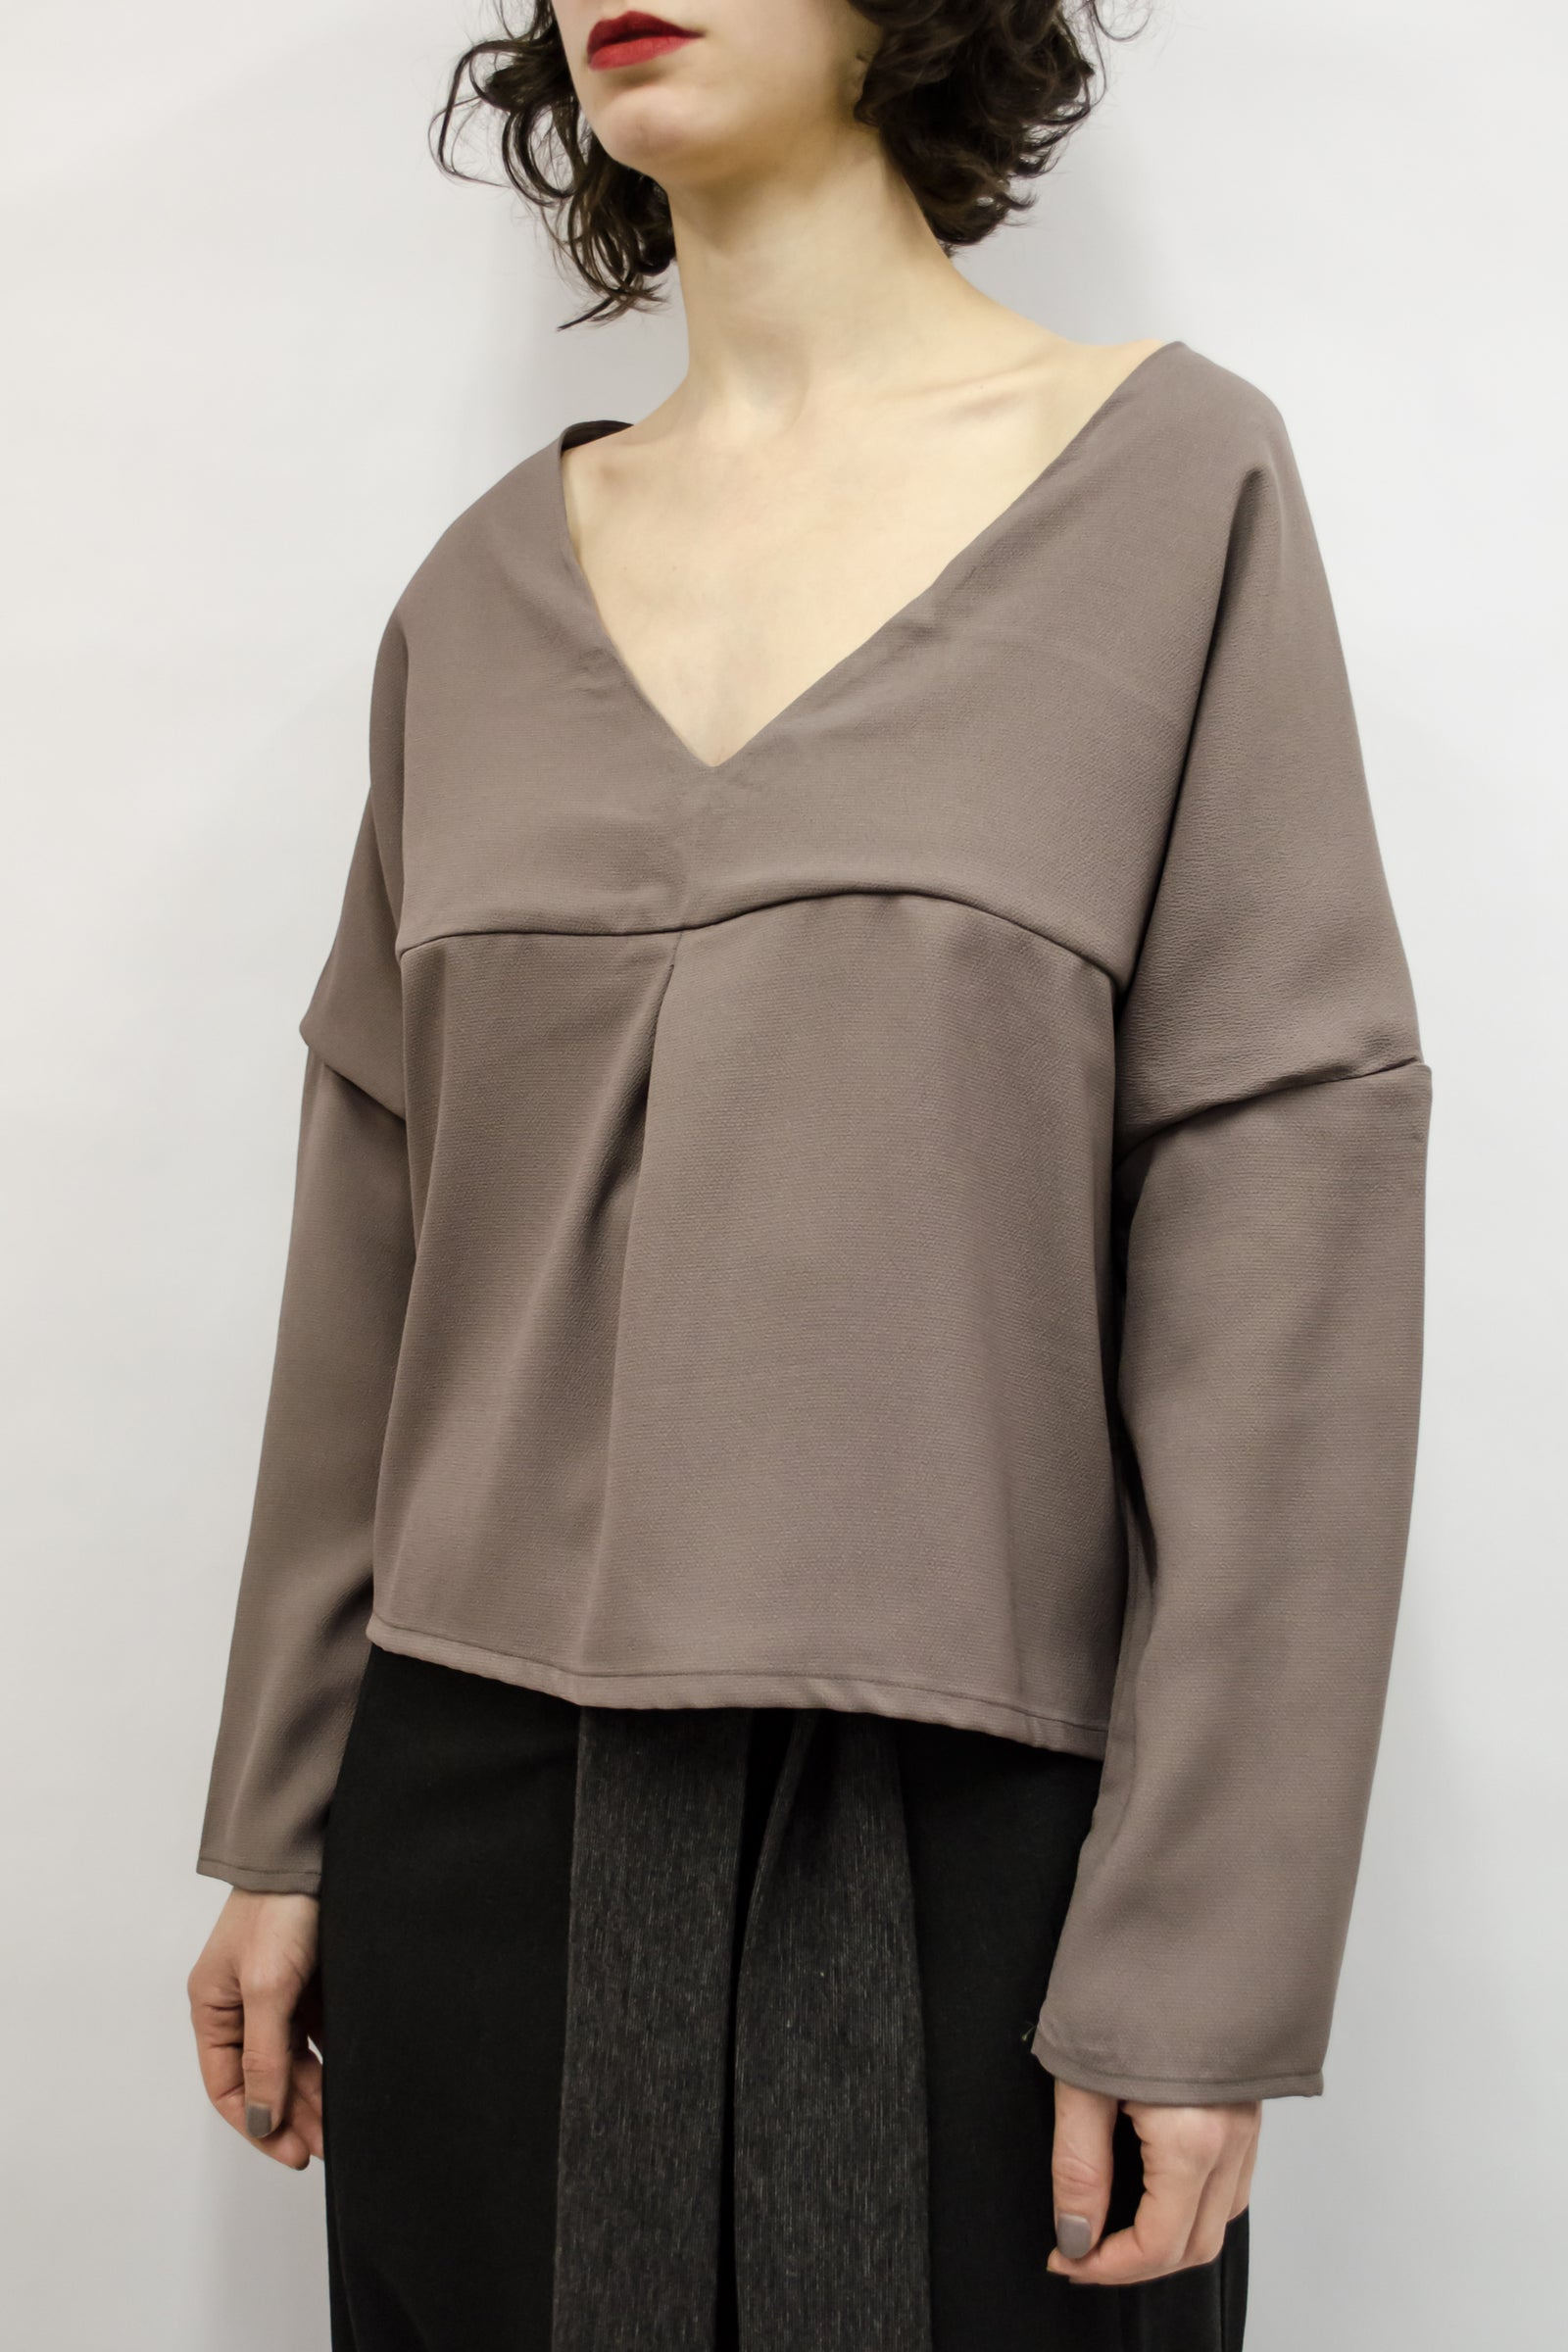 Top Aina in Satin Crispy Crepe Colors